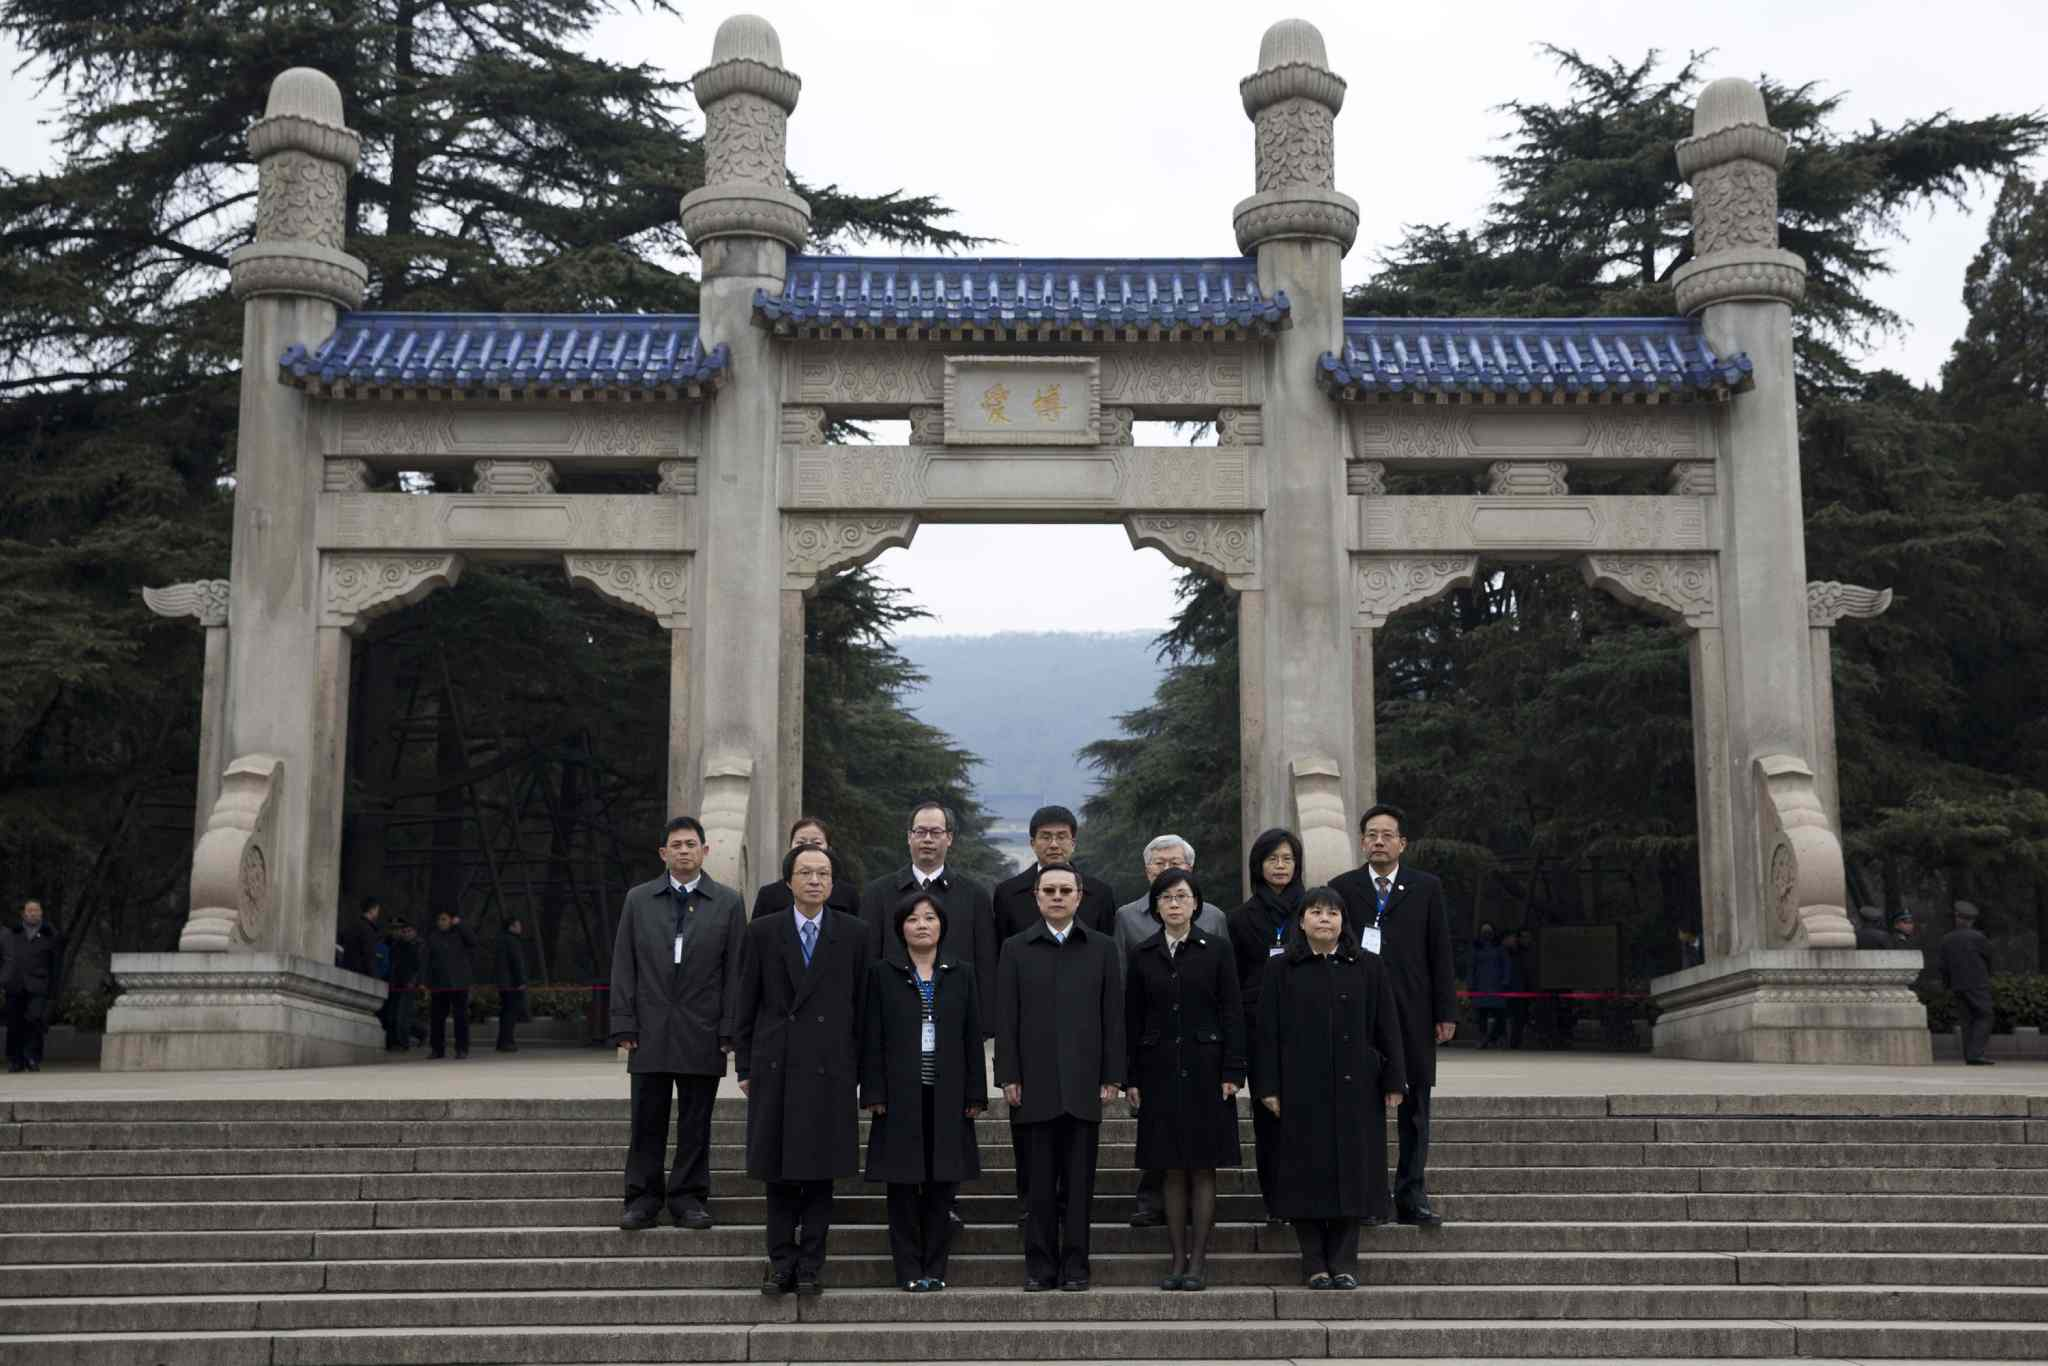 Wang Yu-chi, front centre in sun glasses, head of Taiwan's Mainland Affairs Council, poses for photos with other officials during a visit to the Mausoleum of Sun Yat-sen in Nanjing, in eastern China's Jiangsu province on Wednesday, Feb. 12, 2014. China and Taiwan hailed a new chapter in their relations on Tuesday and said their ties would advance after they held their highest-level government talks since they split amid civil war in 1949.